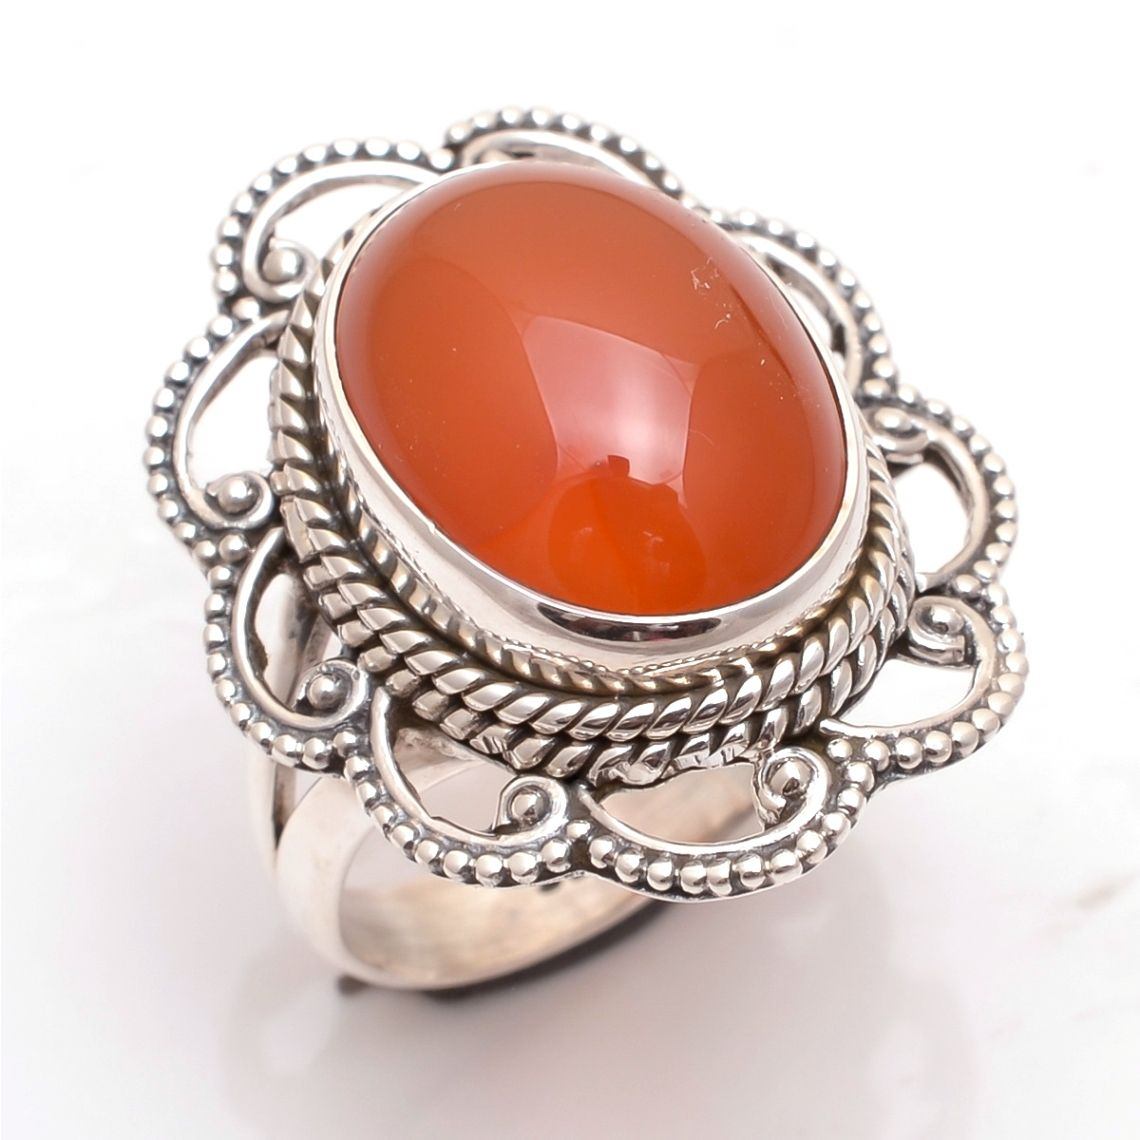 Carnelian Gemstone 925 Sterling Silver Ring Size 7